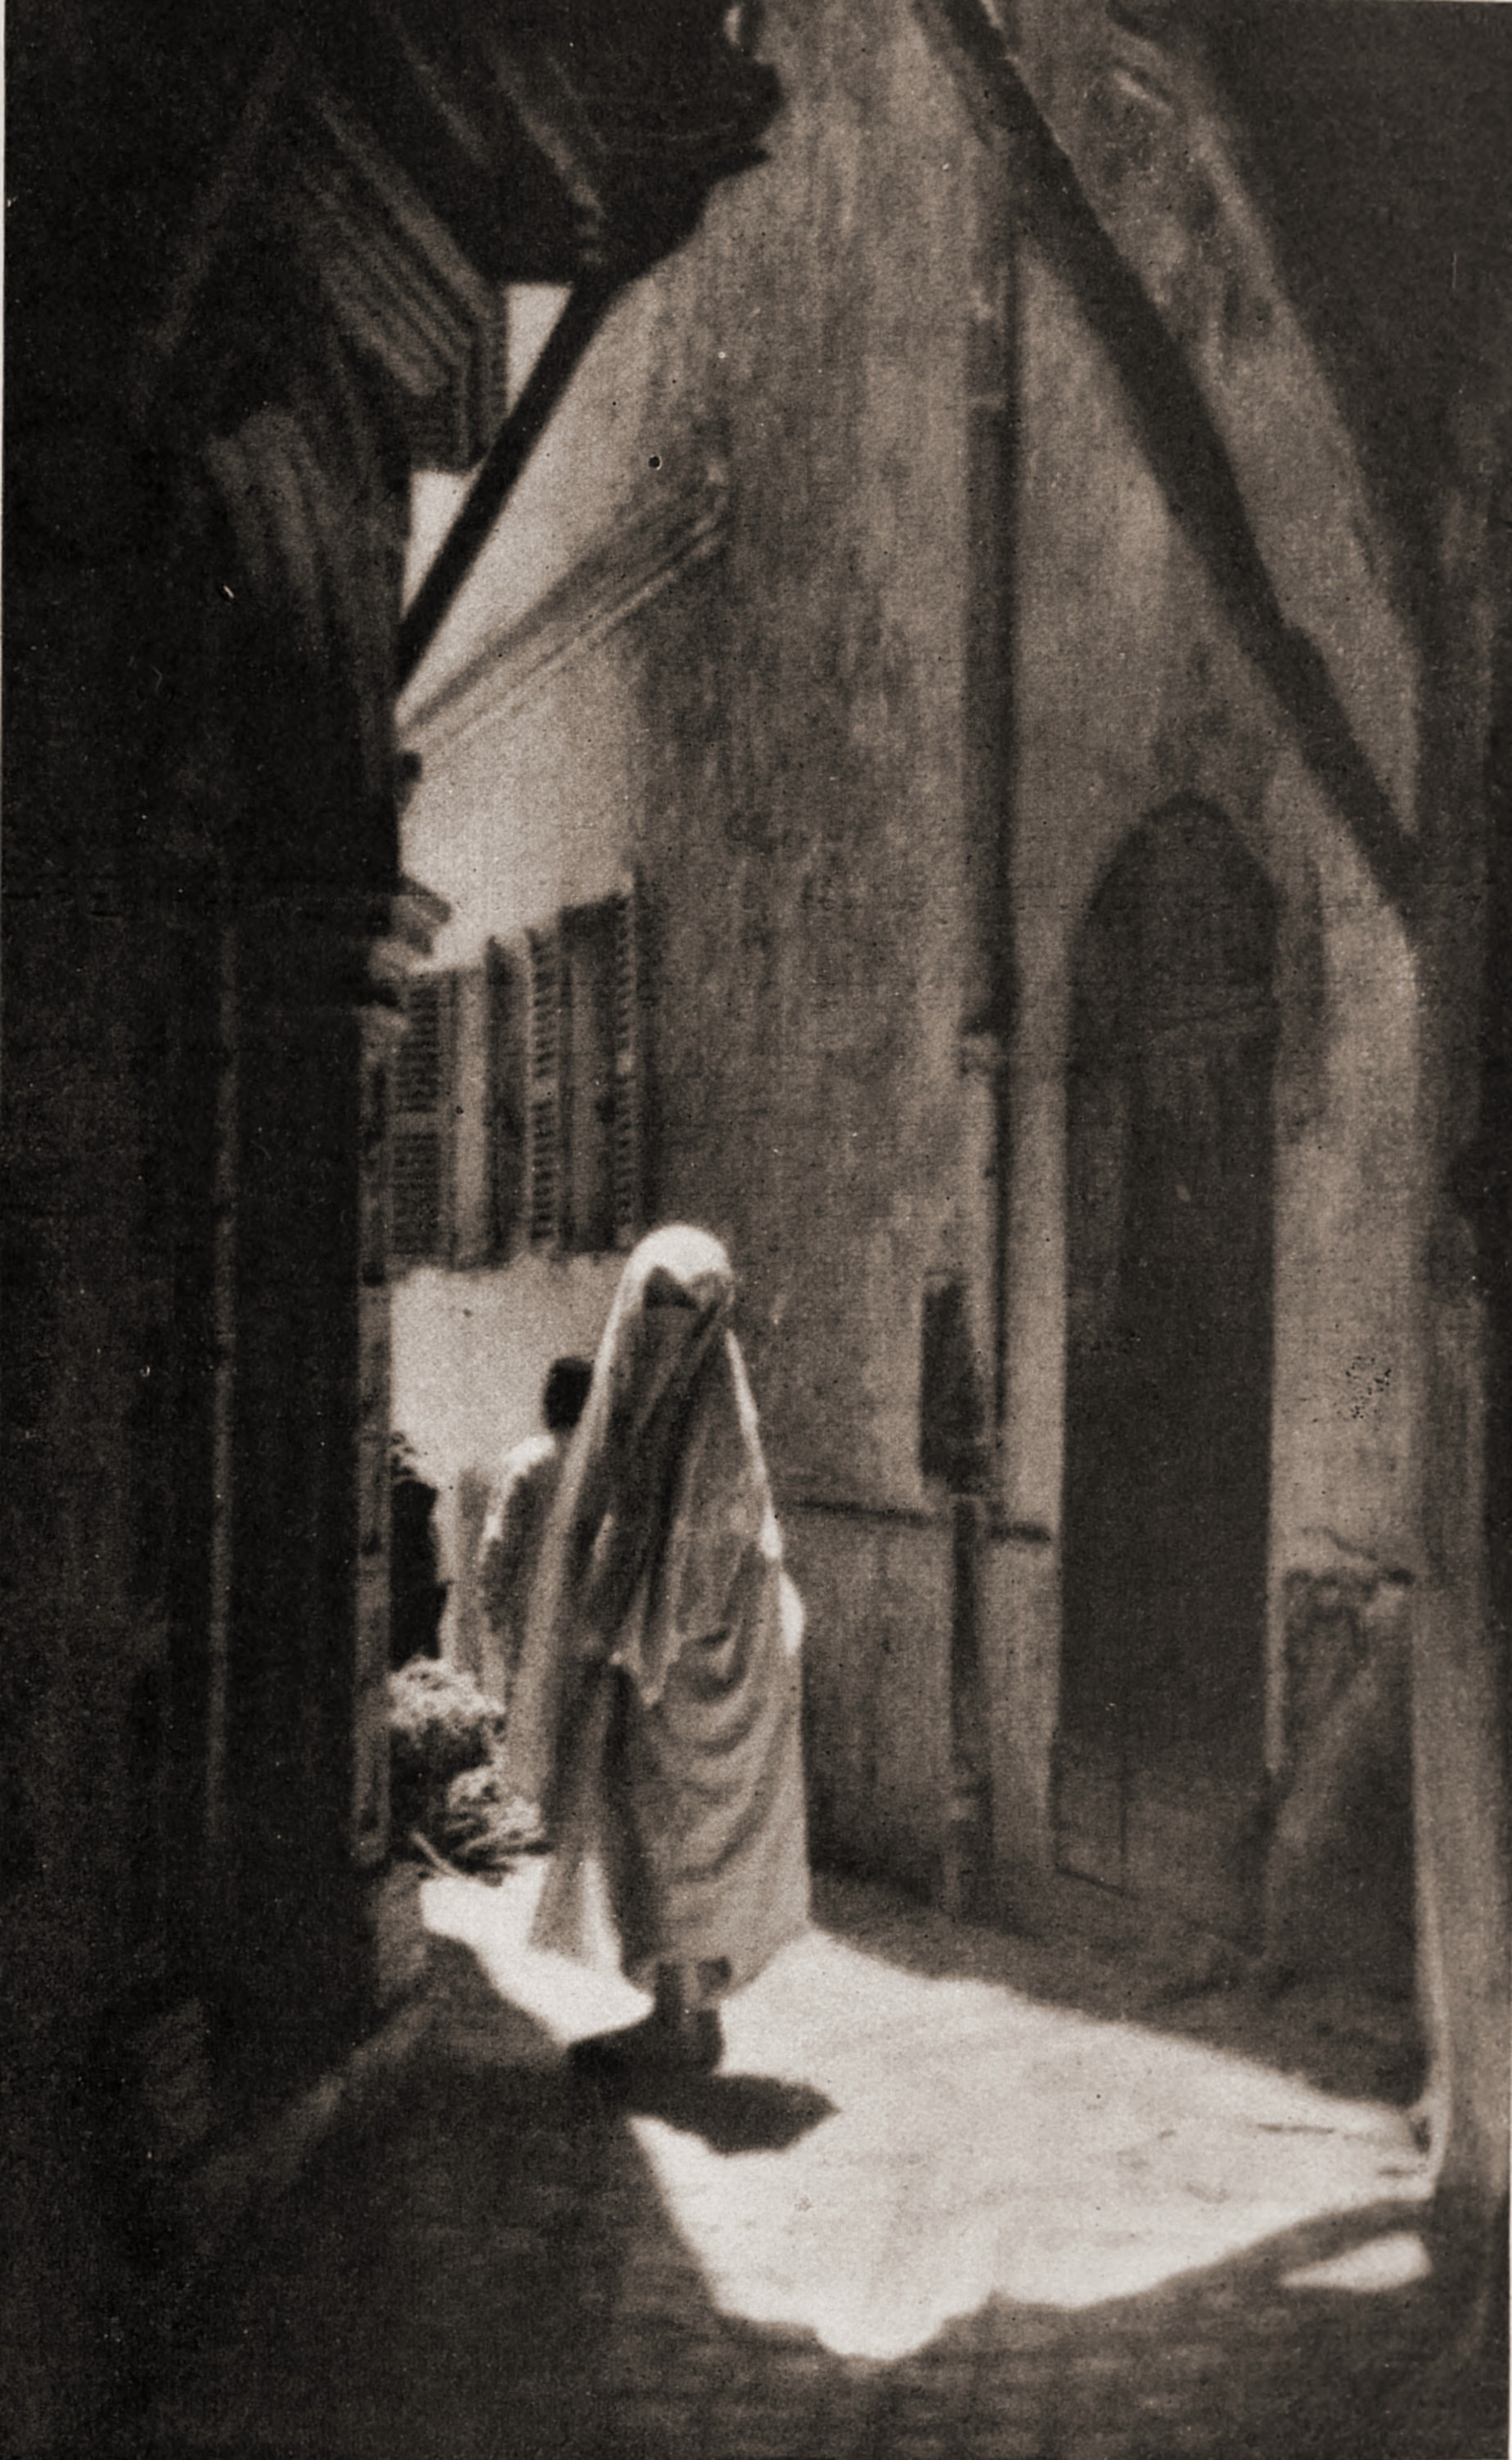 The Veiled Lady by Louis J. Steele about 1923